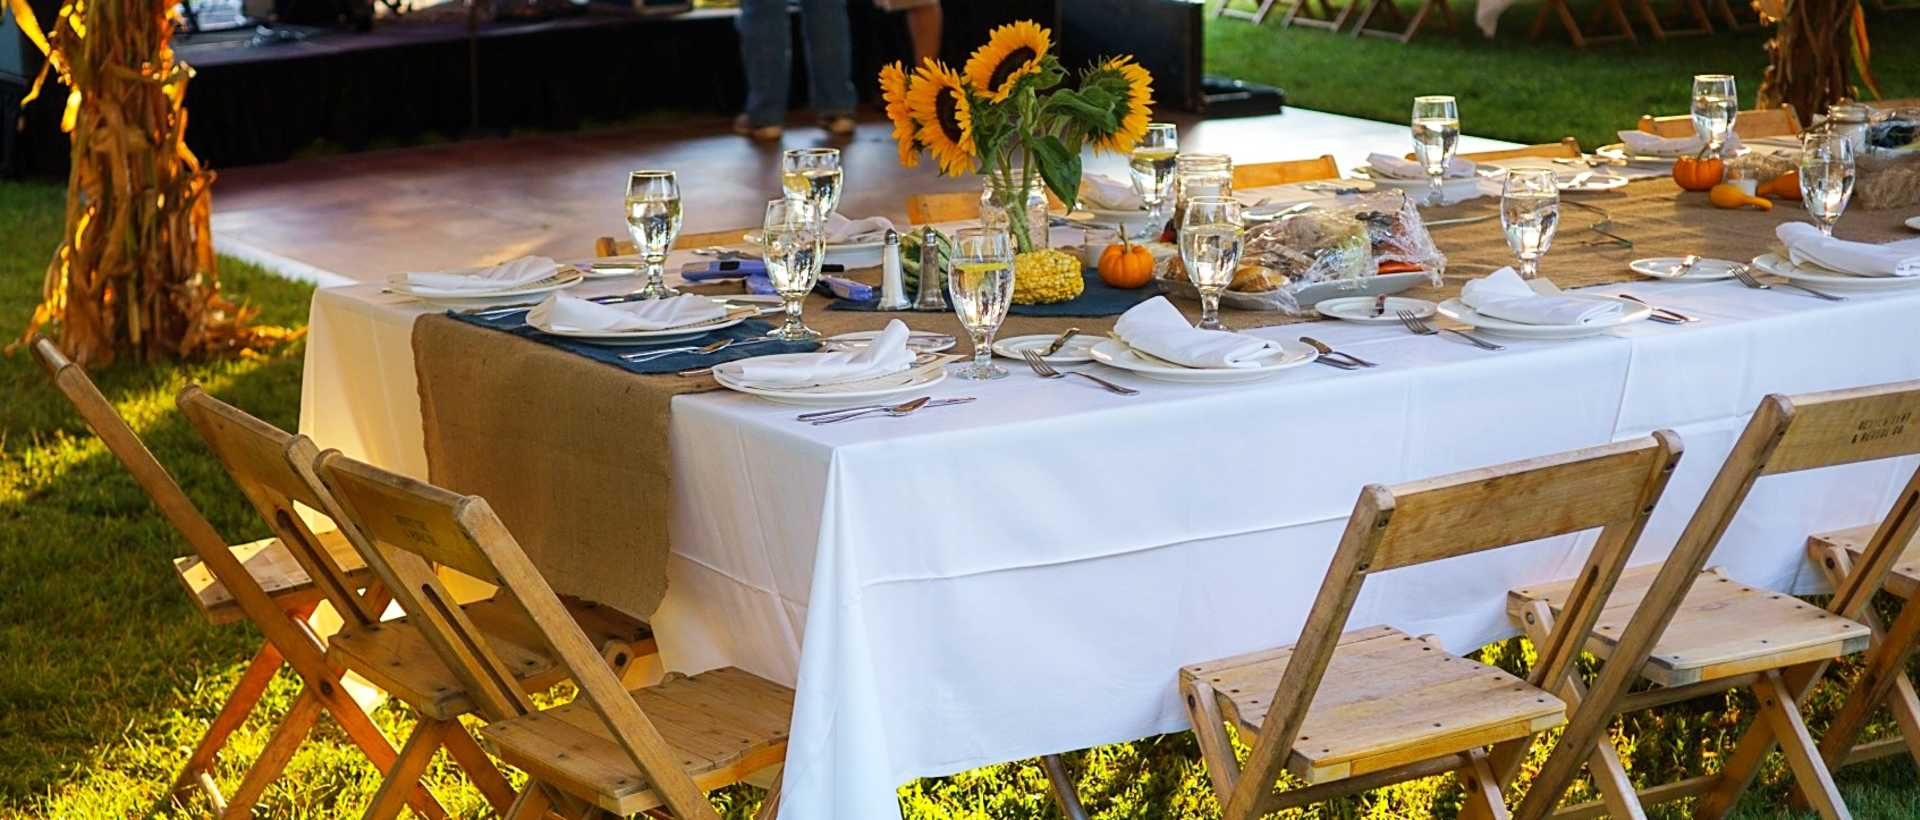 An outdoor dinner table at Farm to Table in Lackawanna County